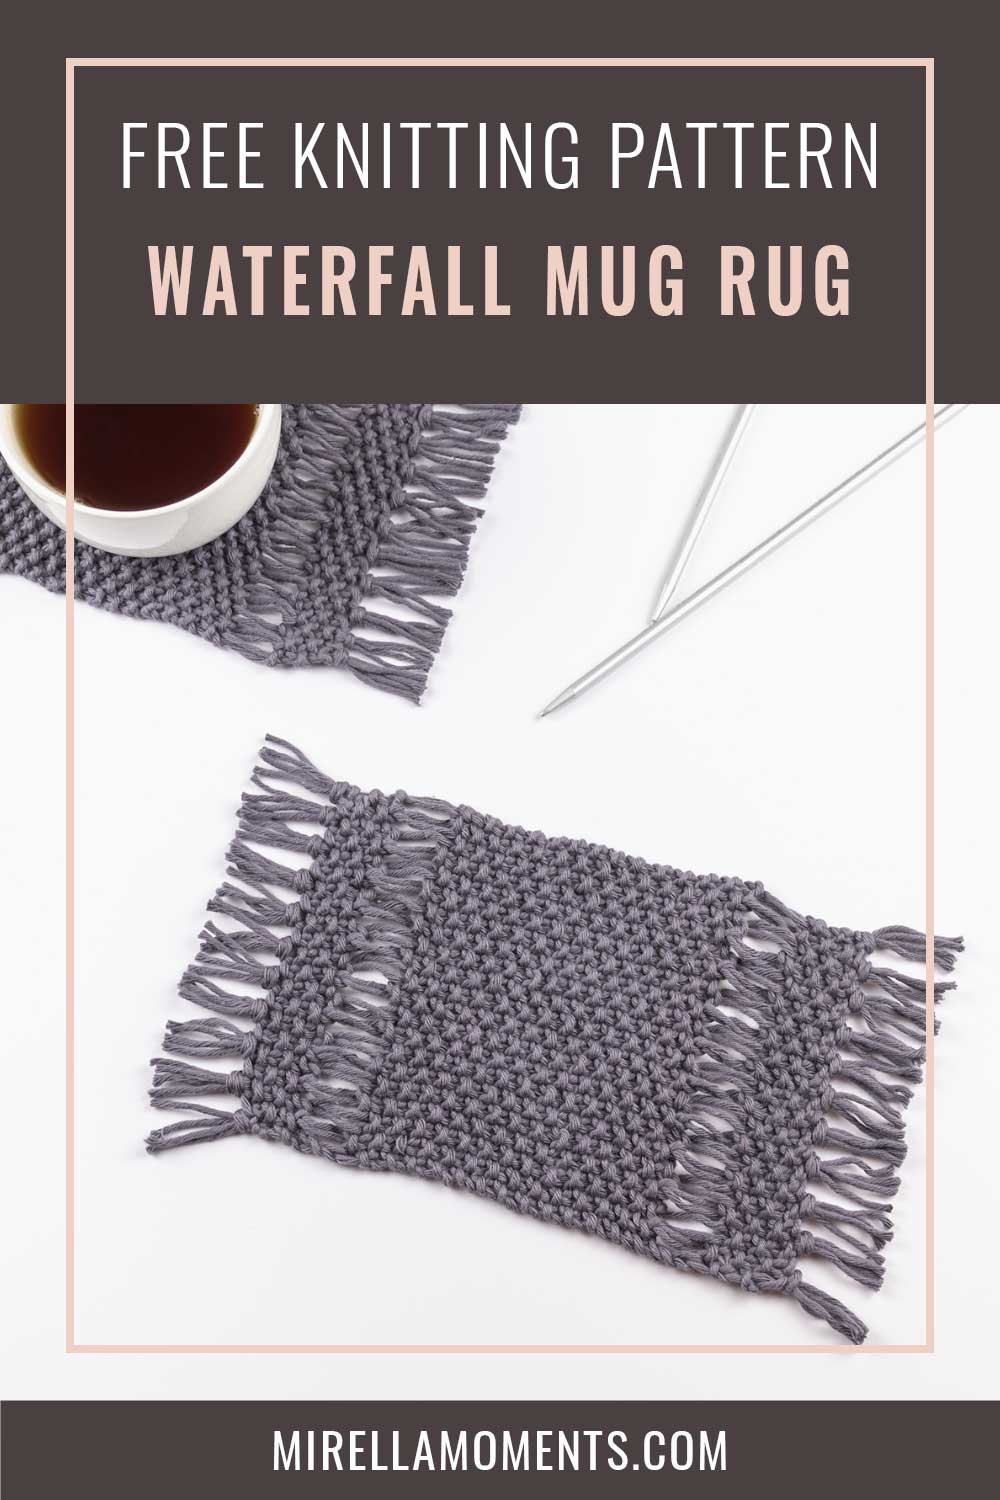 Waterfall Rug Mug Knitting Pattern Mirella Moments